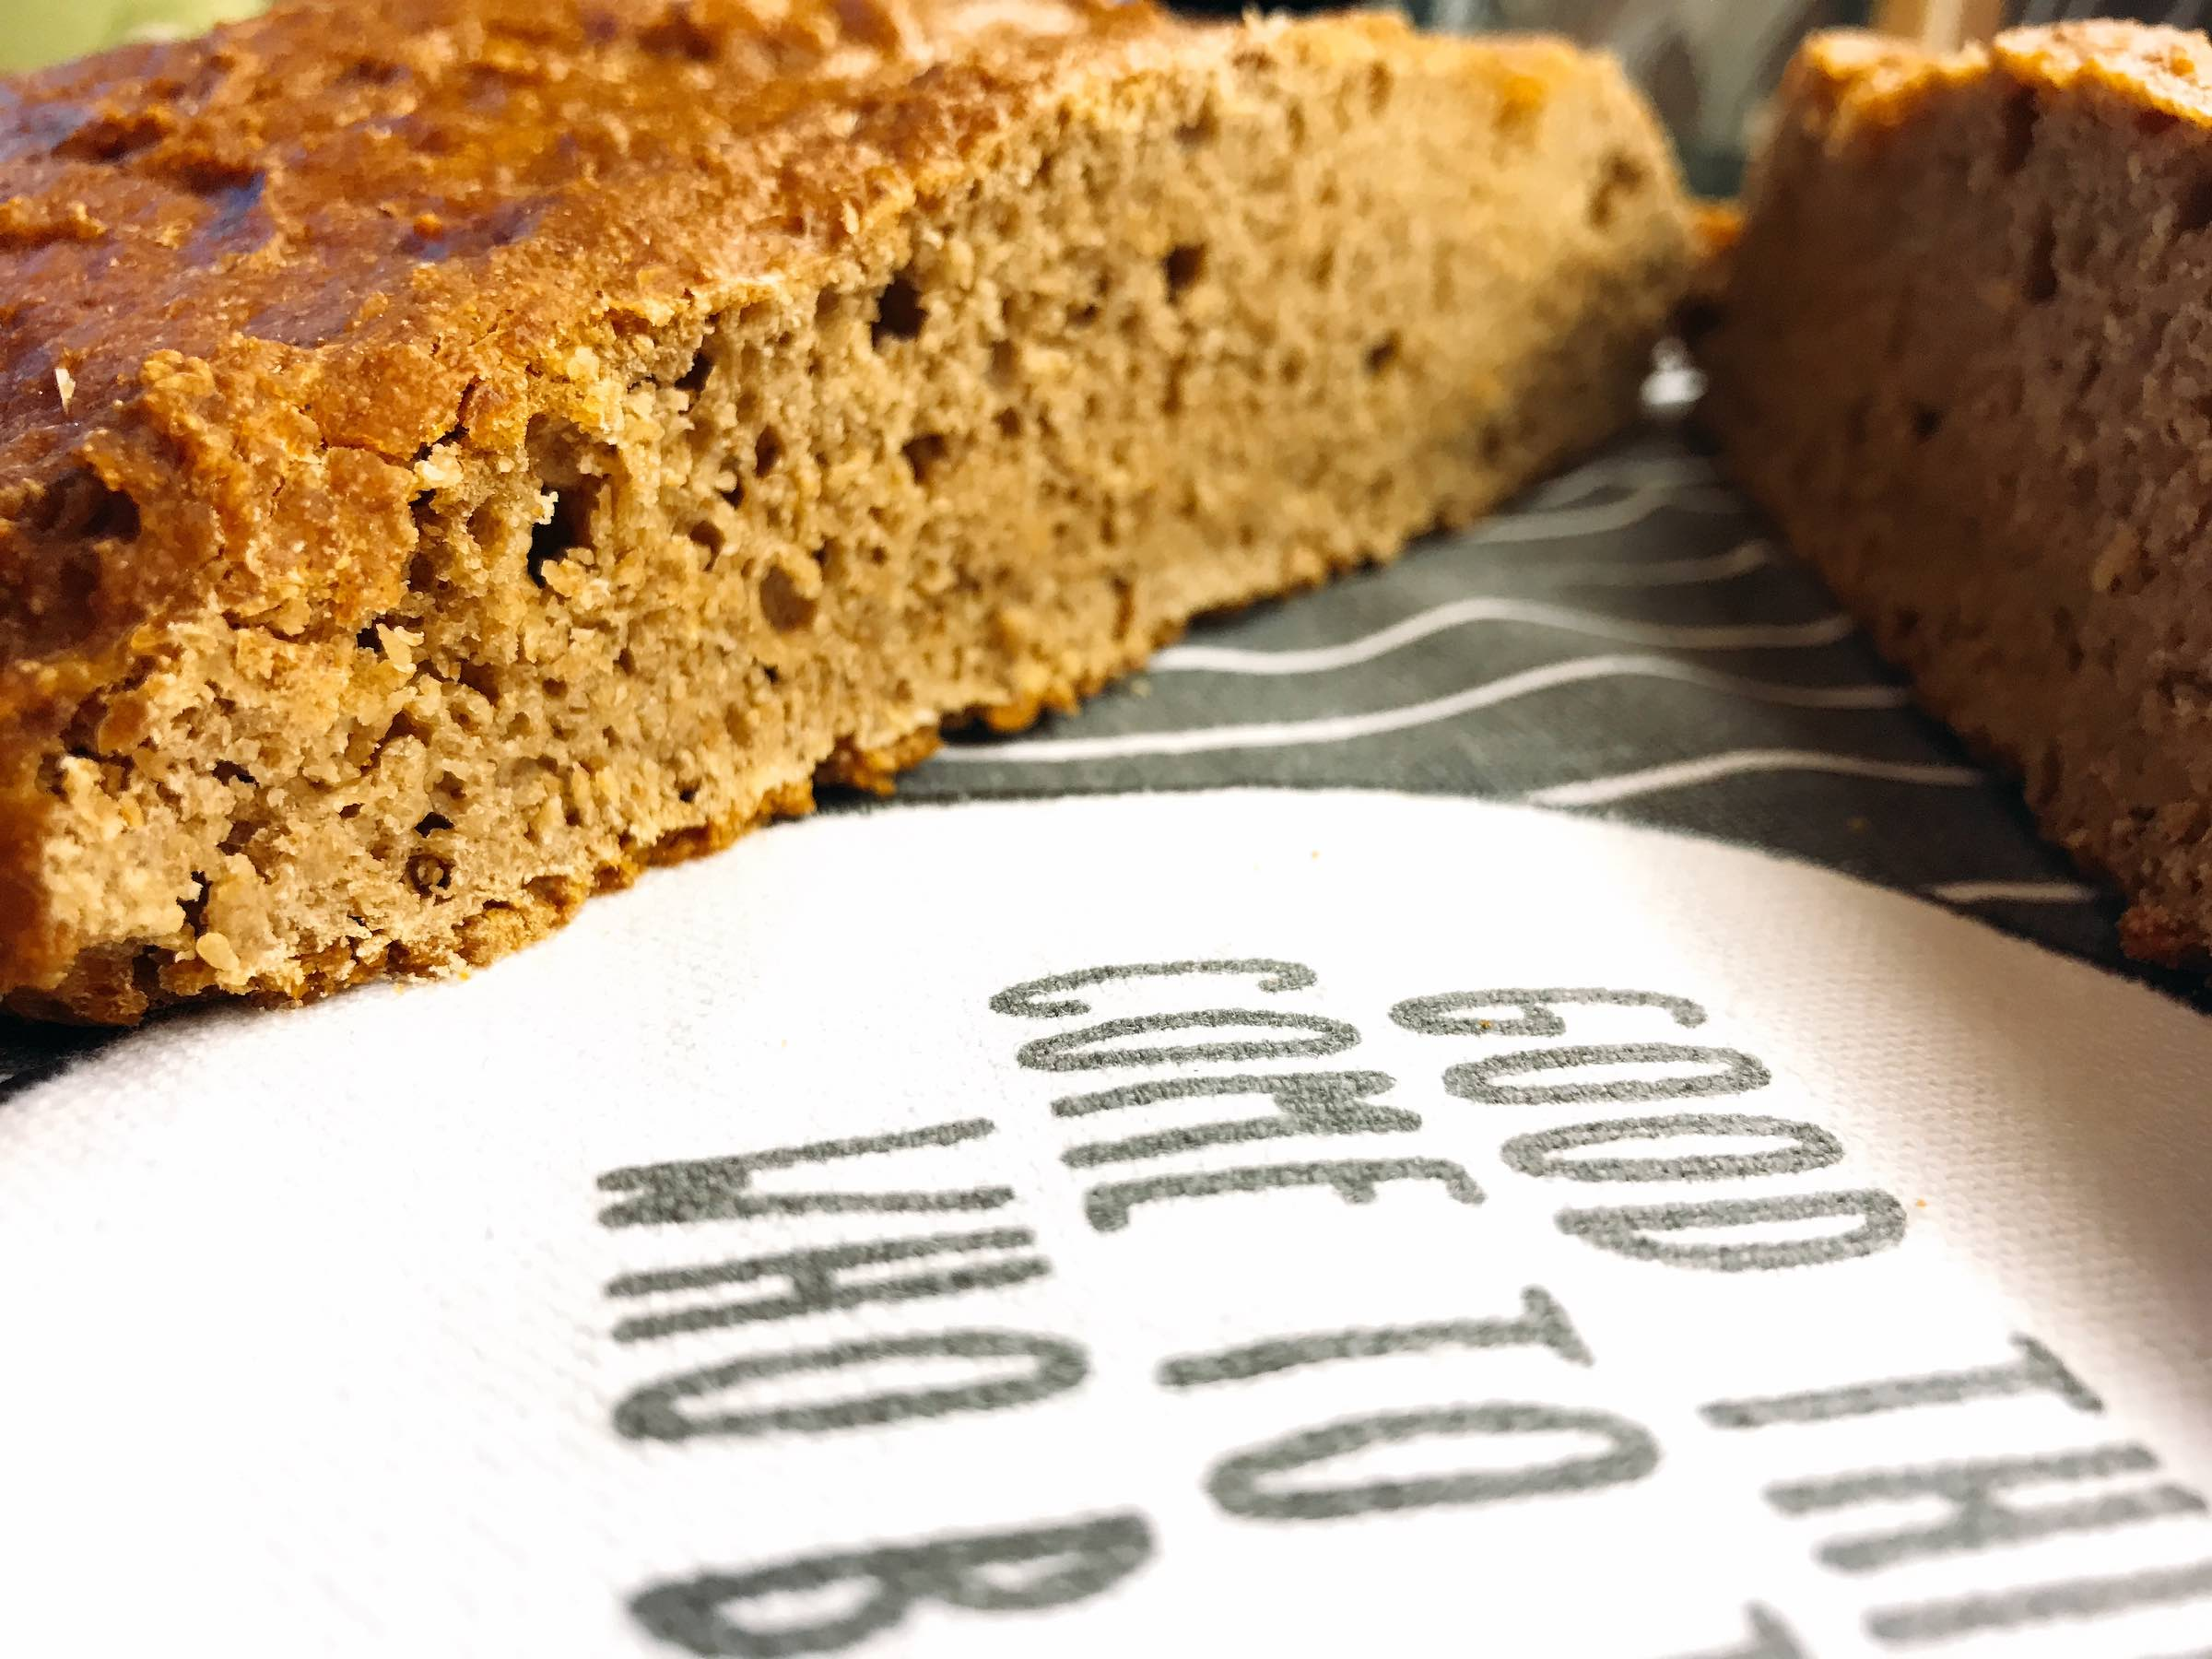 Sliced Einkorn bread